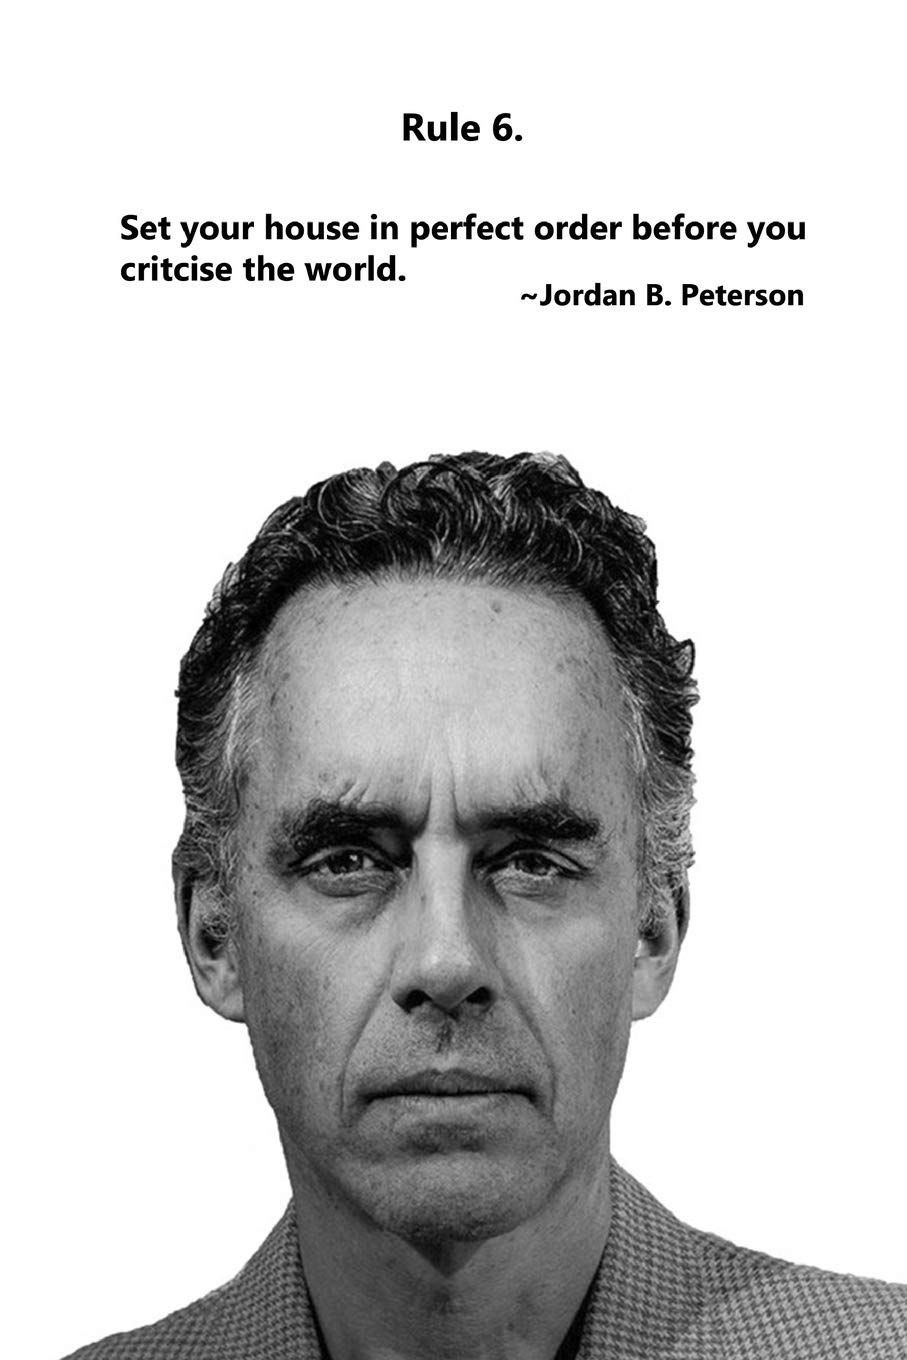 Arne Uccidere montanaro  Jordan Peterson: 12 Rules for Life Journal - Rule 6: Composition Notebook,  Ruled, Blank Lined Journal, Diary: Publisihng, MasterClass: 9781695997745:  Books - Amazon.ca